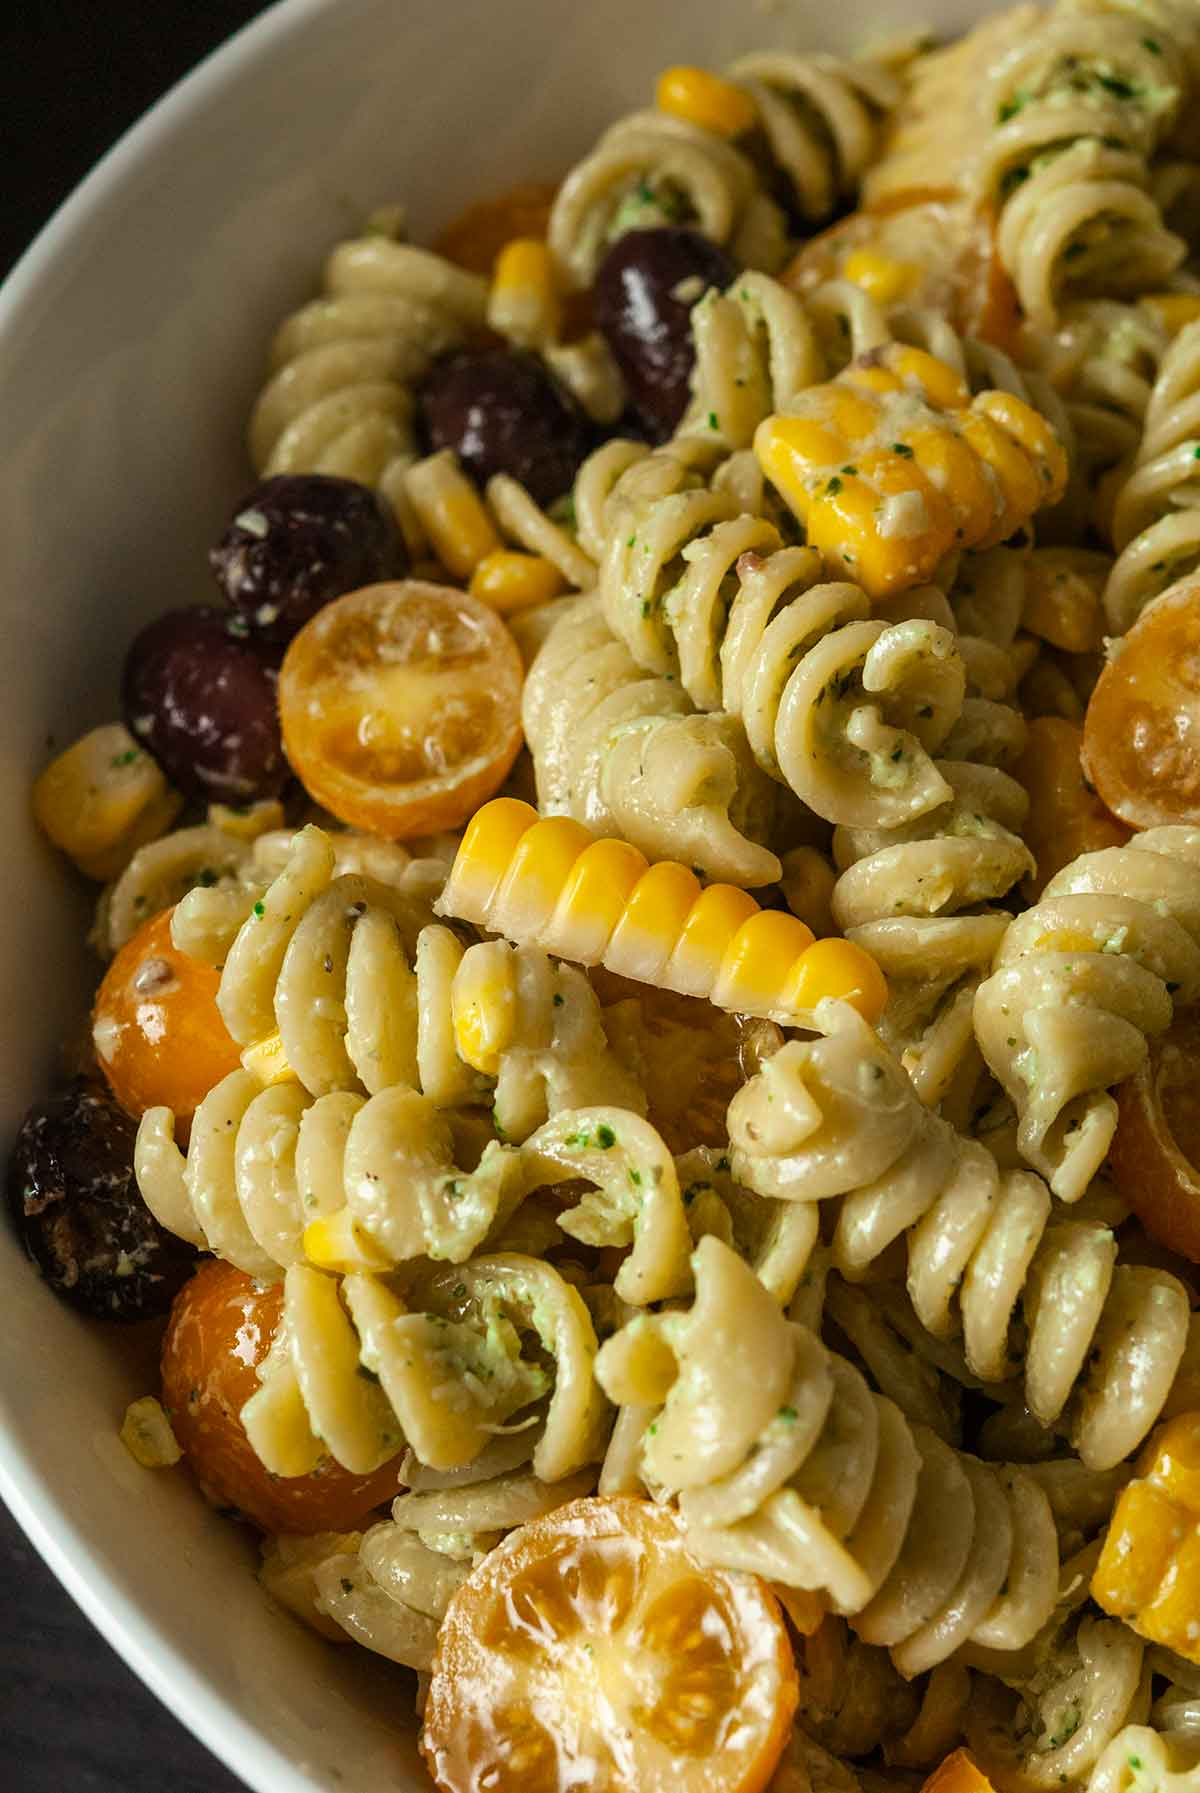 A bowl of pasta salad with fresh corn, tomatoes and olives.